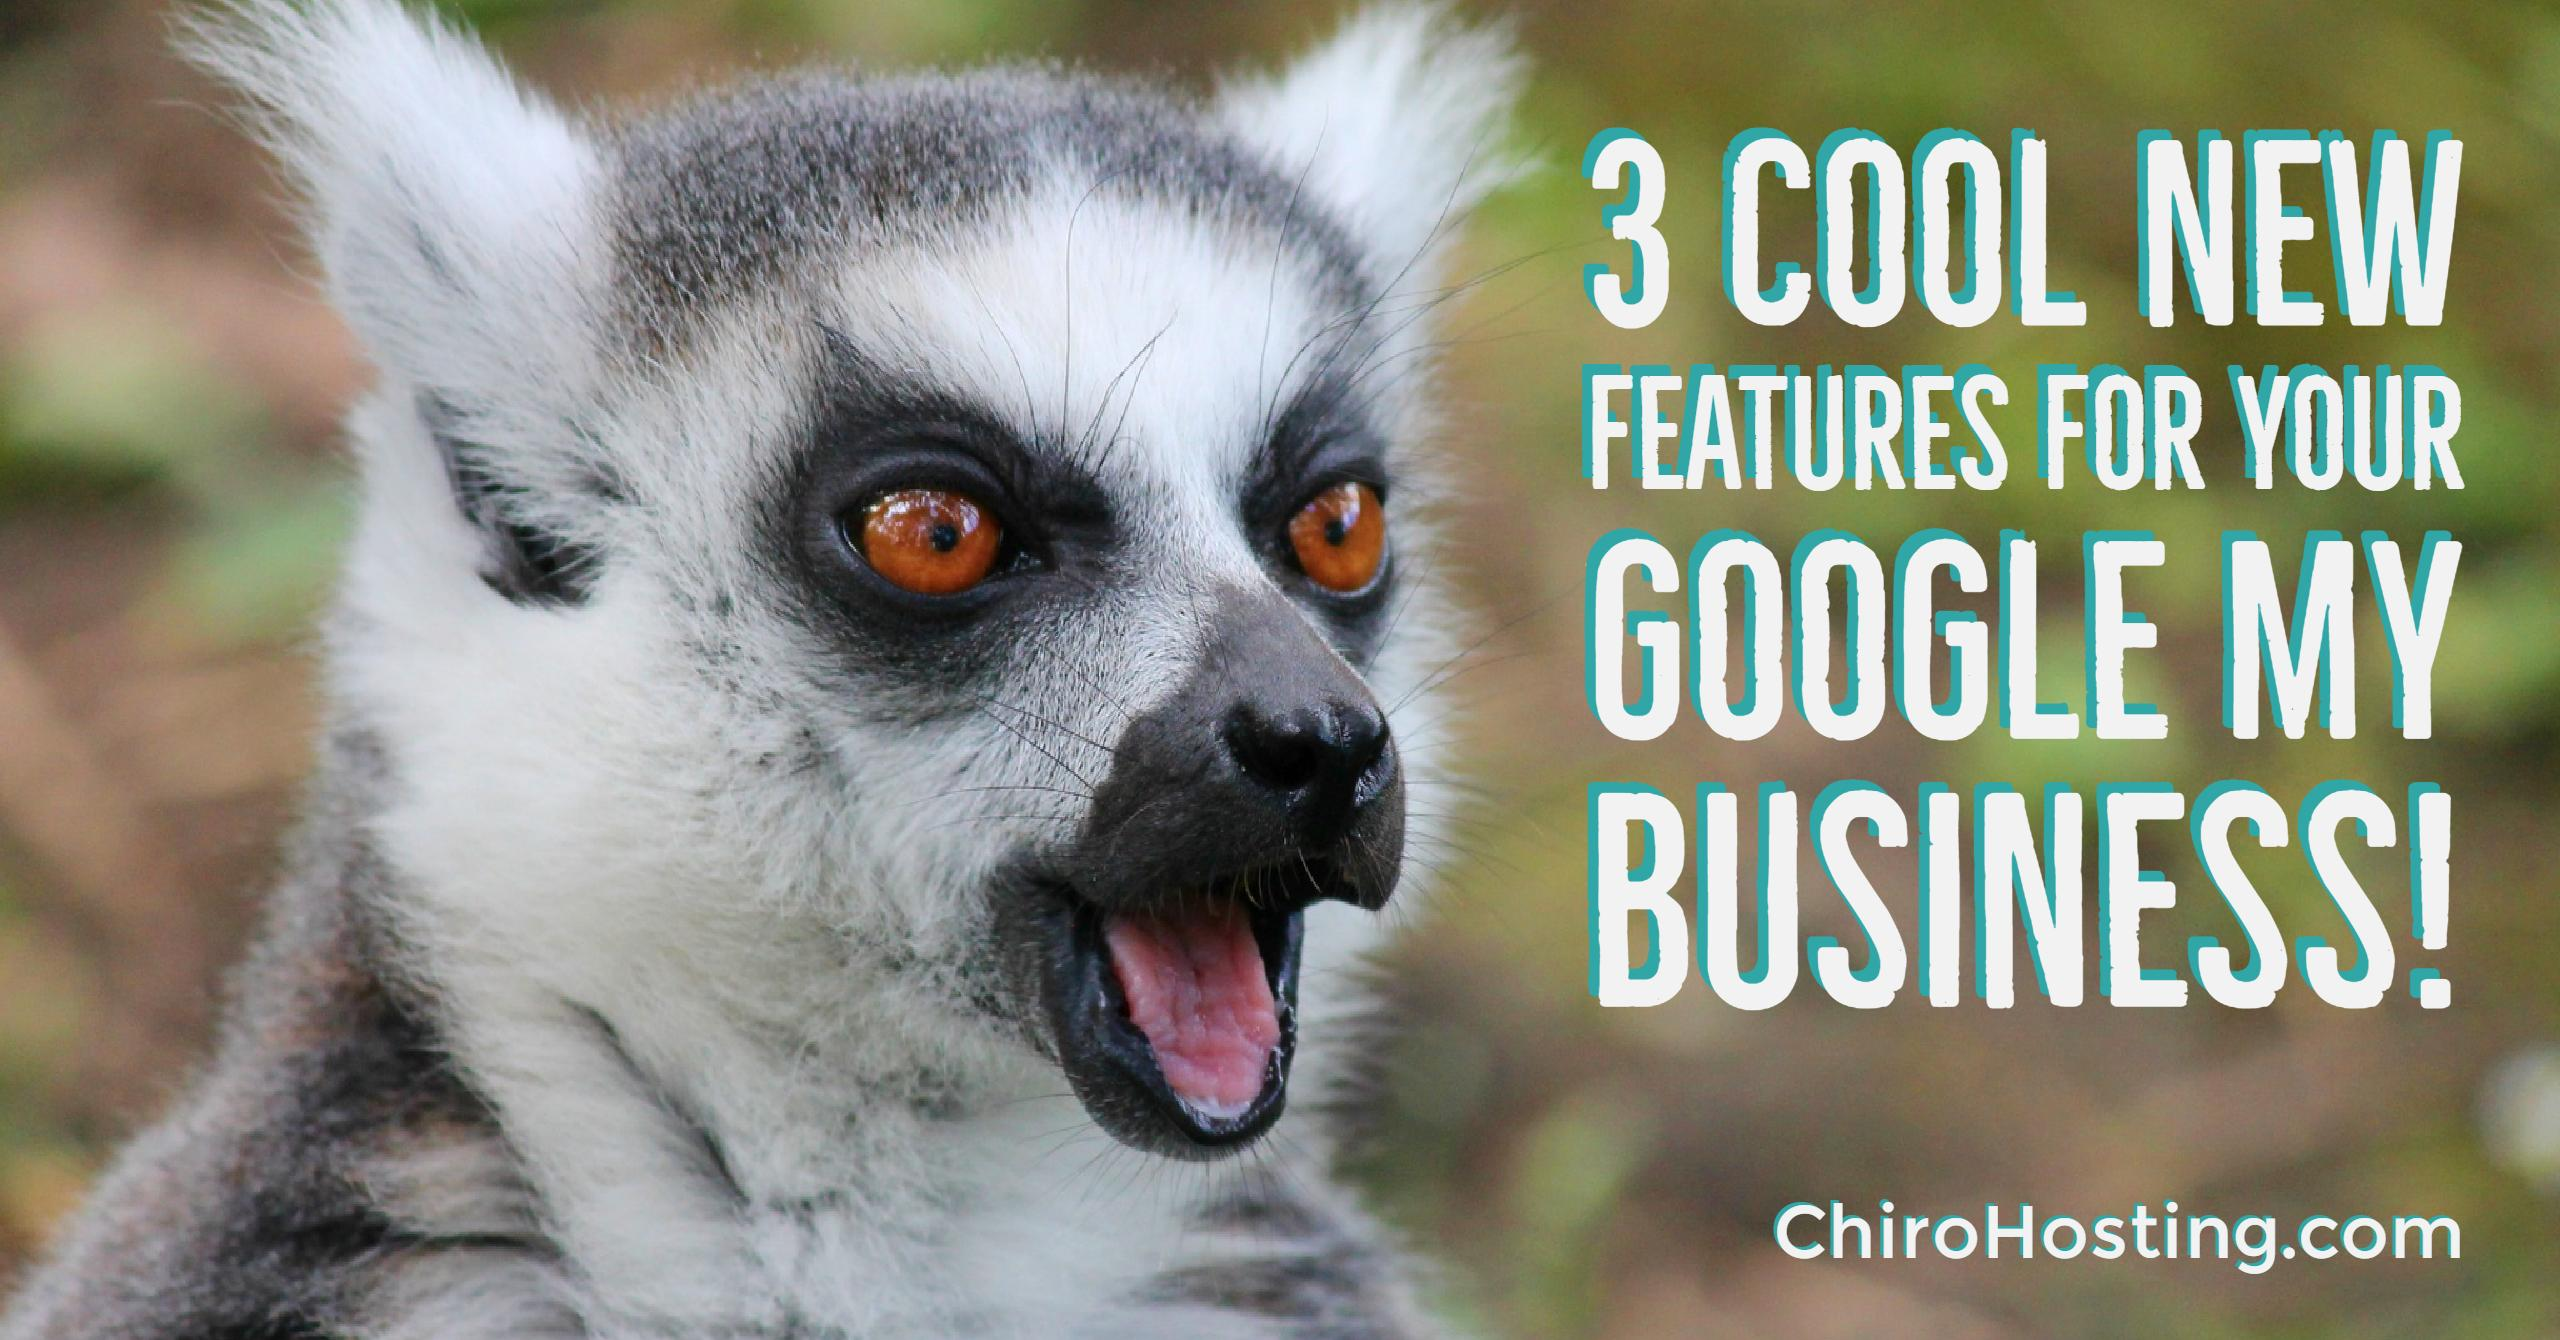 3 Cool New Features for your Chiropractic Google My Business! You NEED to be in the KNOW!